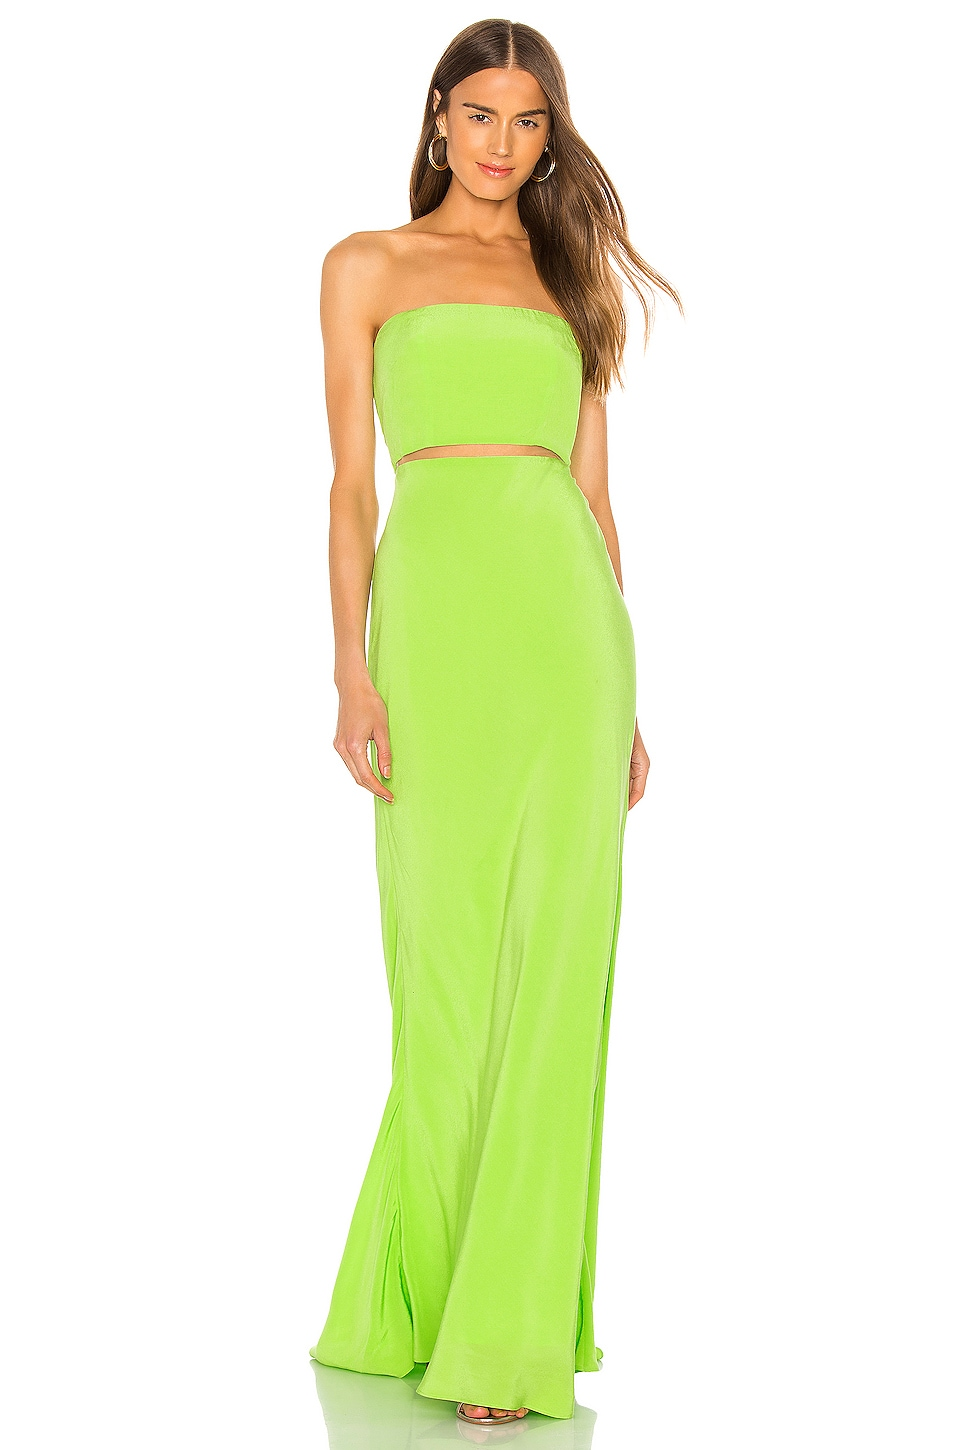 Lovers + Friends Pryce Gown in Neon Lime Green